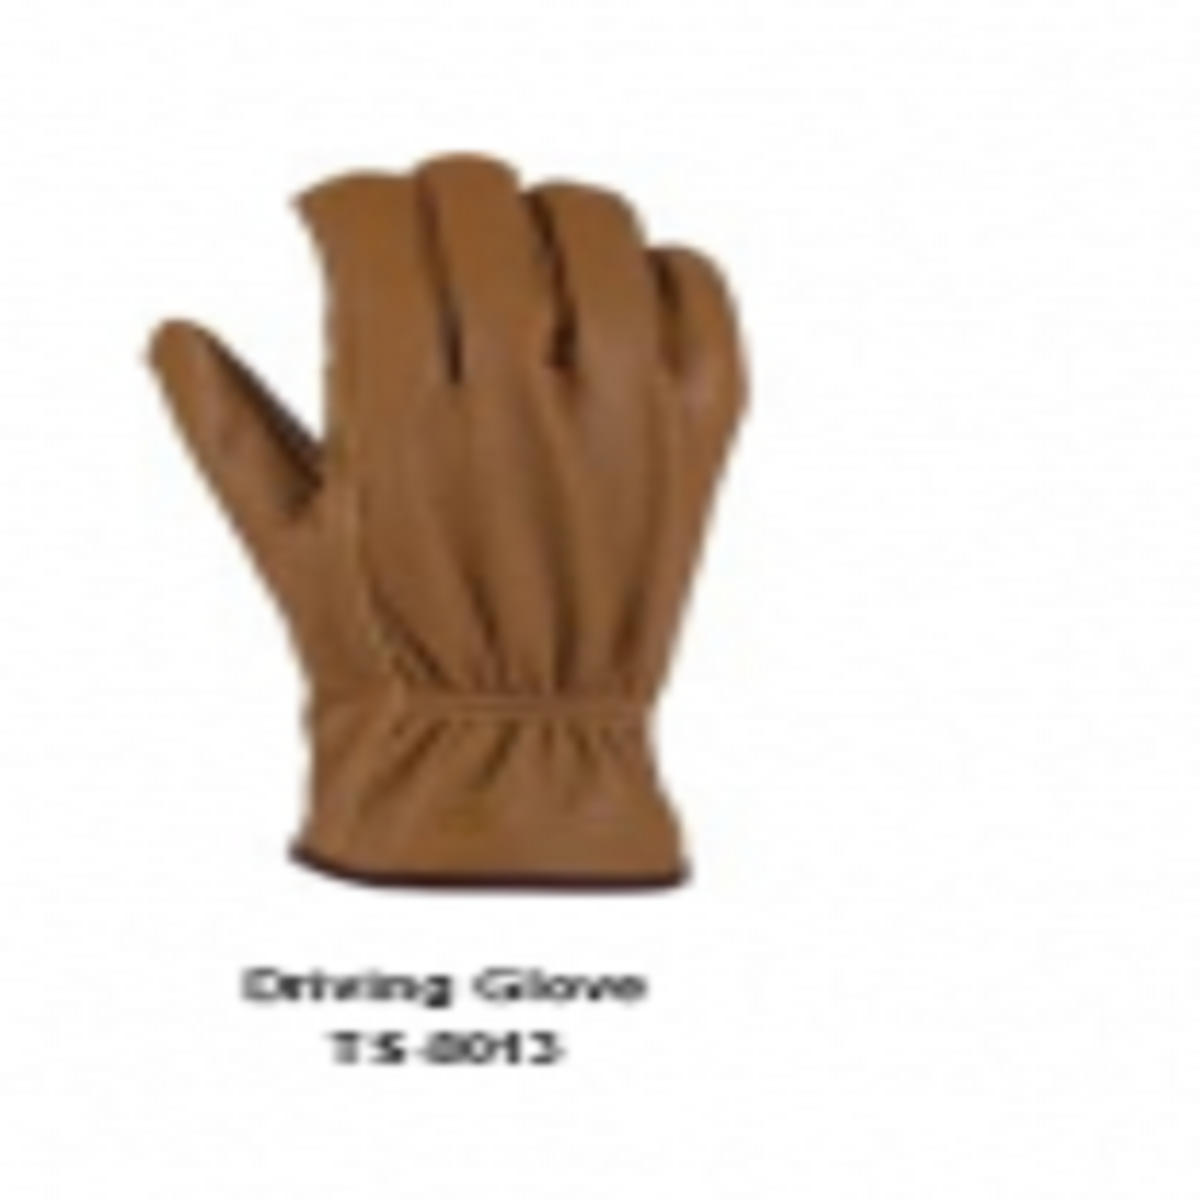 Leather Men's Fashion Driving Gloves Model No. TSI 8013